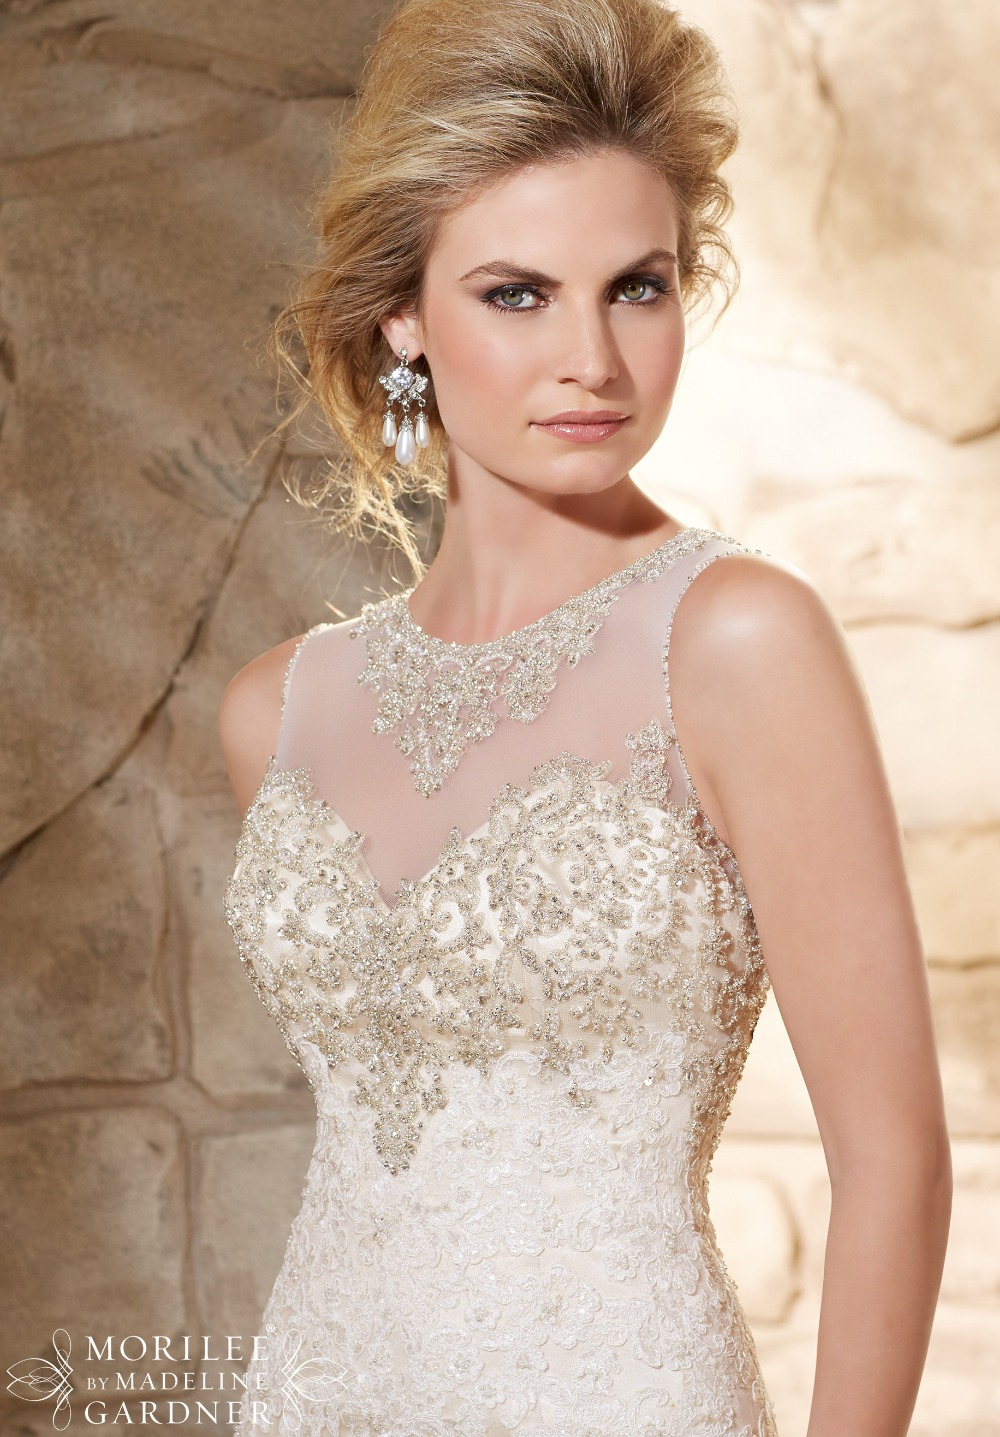 9aeb04d5e971 Heavy Beaded Custom Made Elegant Lace Wedding Dress See Through Mermaid  Bride Dresses Robe De Marriage Gown 2015-in Wedding Dresses from Weddings &  Events ...